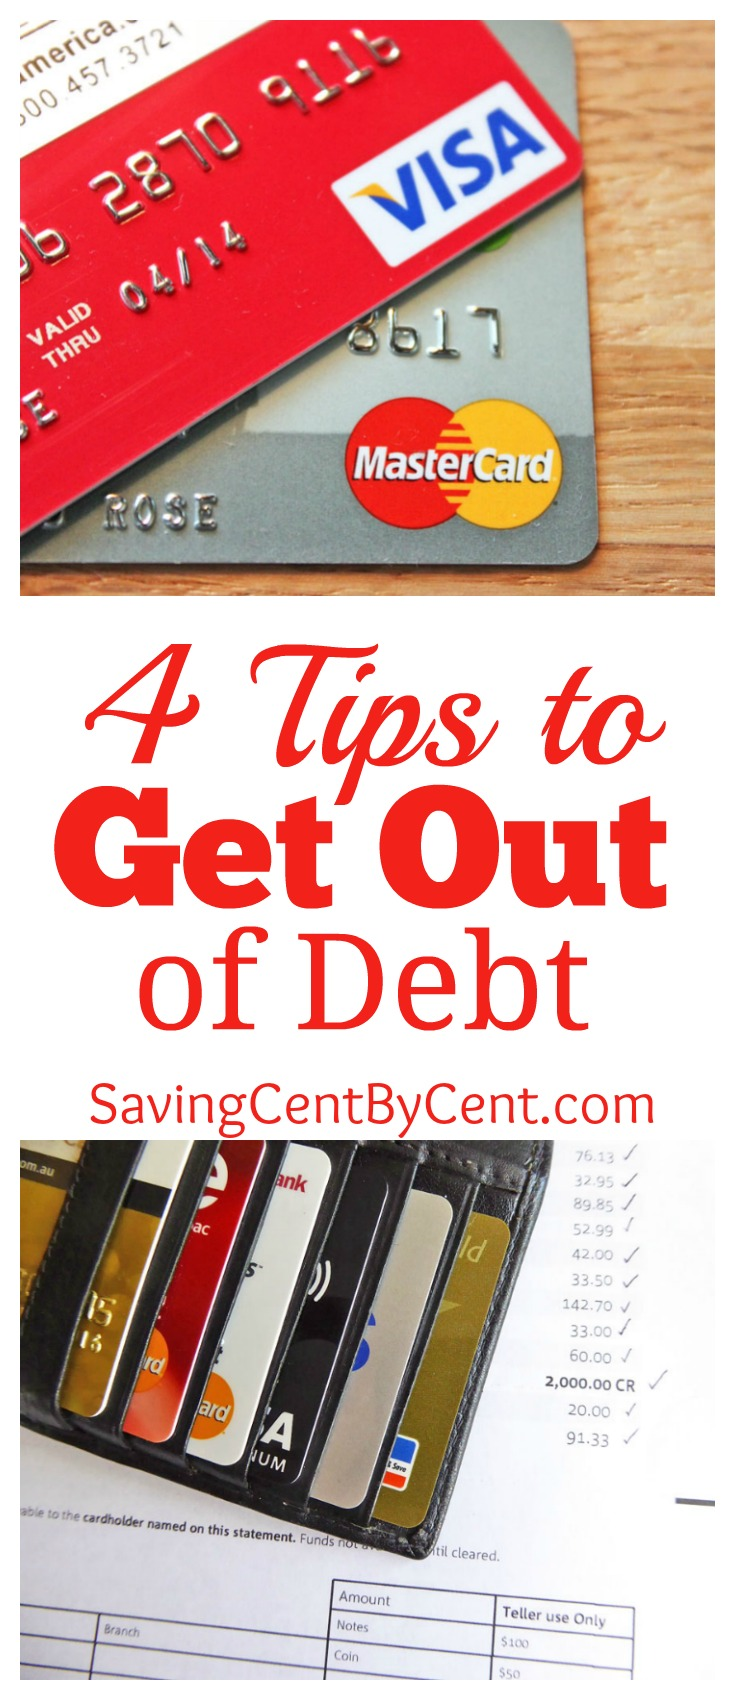 4 Tips to Get Out of Debt